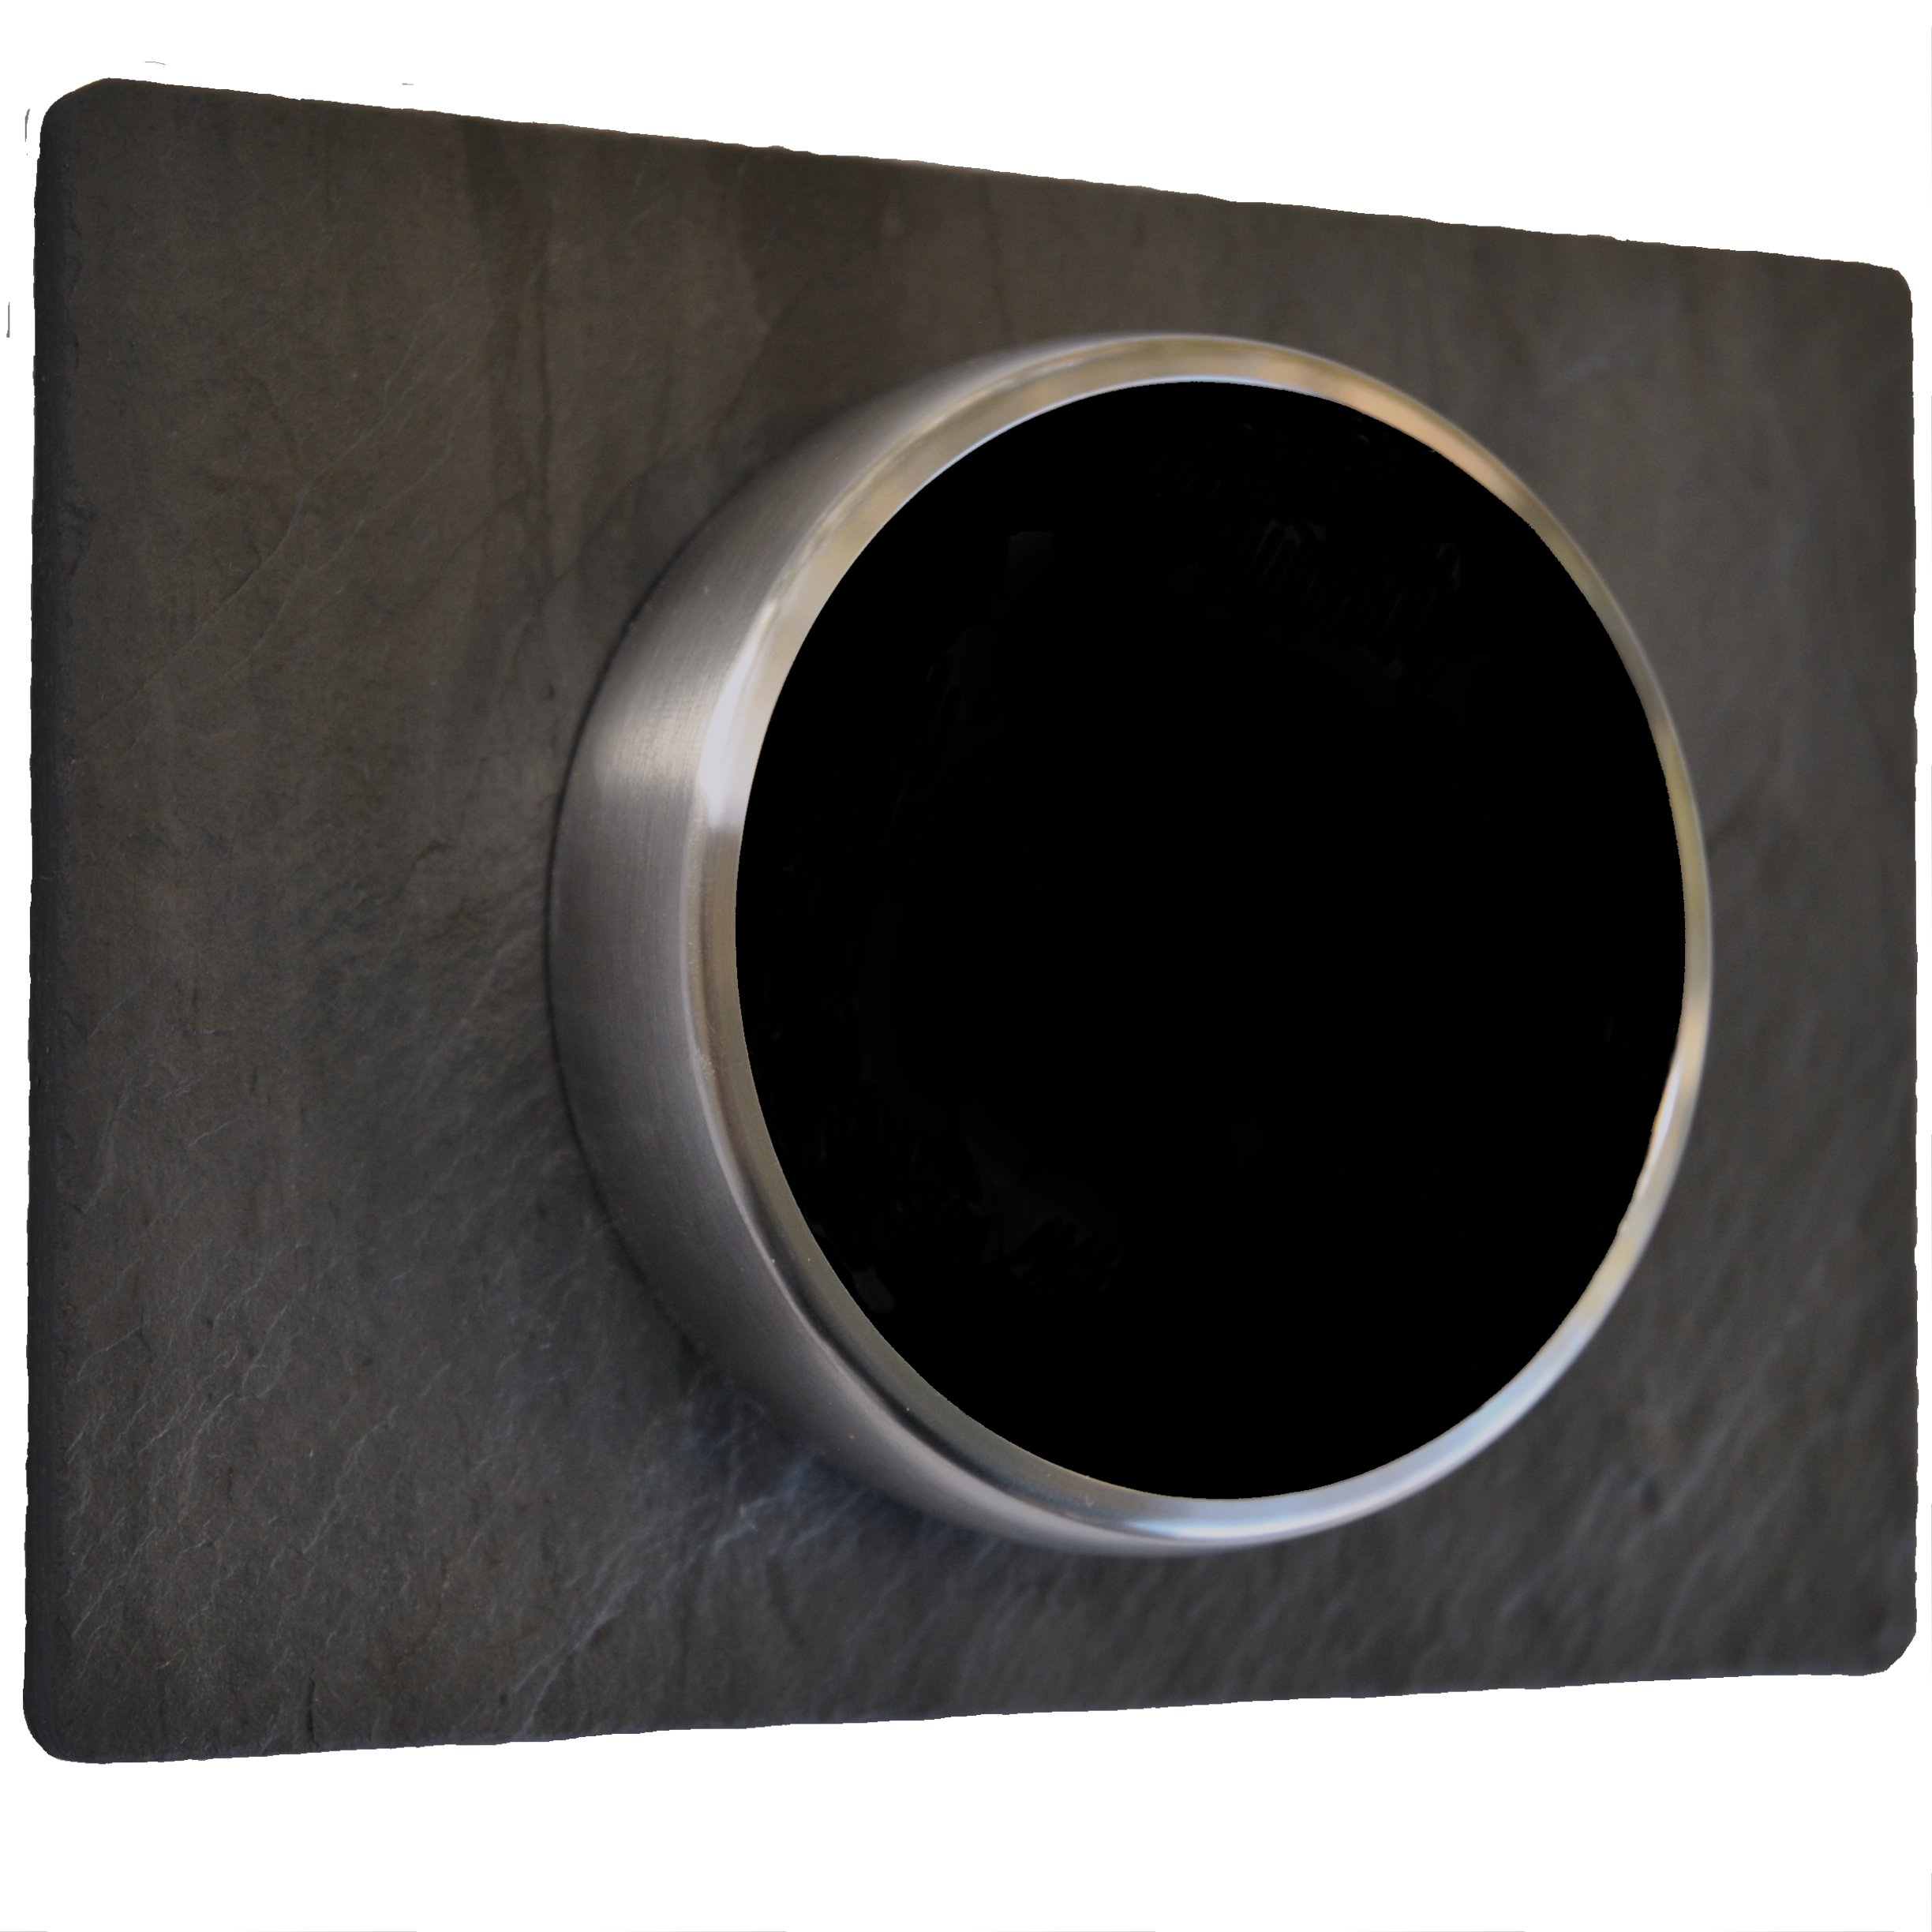 Nest Wall Plate Trim Cover - Slate Stone (6 x 4 7/16 Inches)